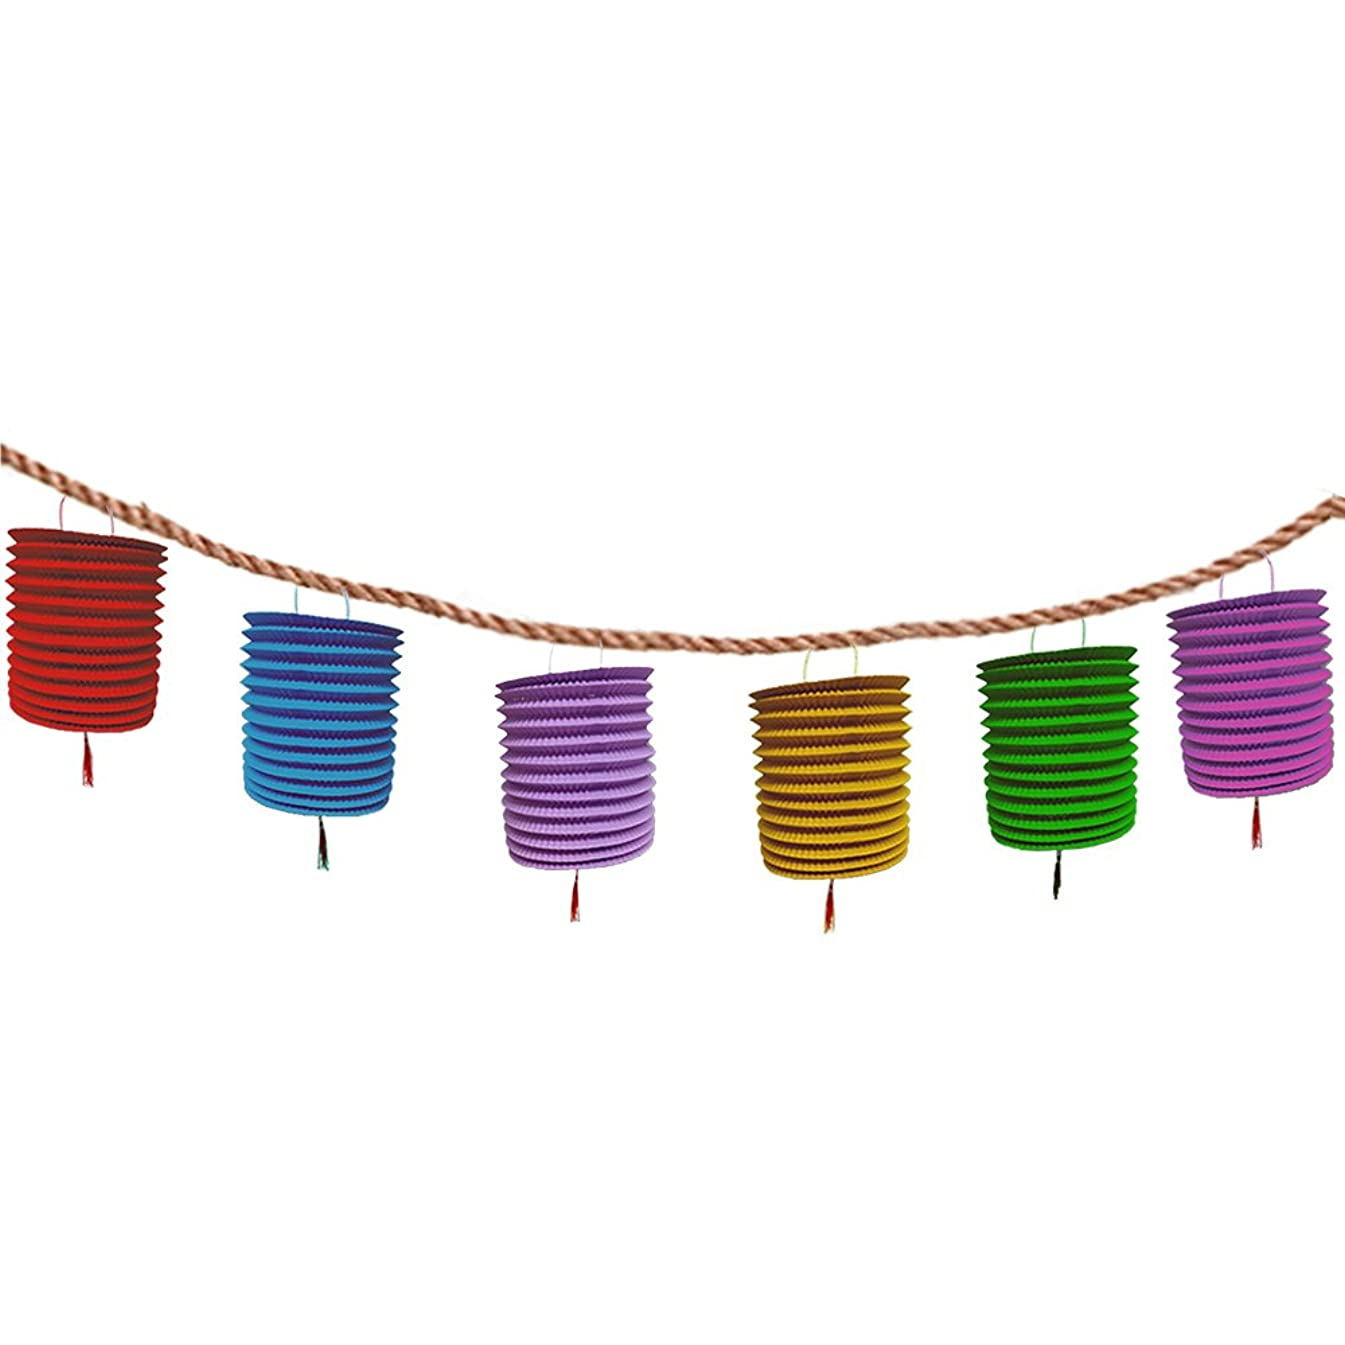 Christmas Multi Colored Hanging Honeycomb Paper Lanterns With Tassel - Colorful Hanging Garland - Set of 12. Great Outdoor Party Decoration.